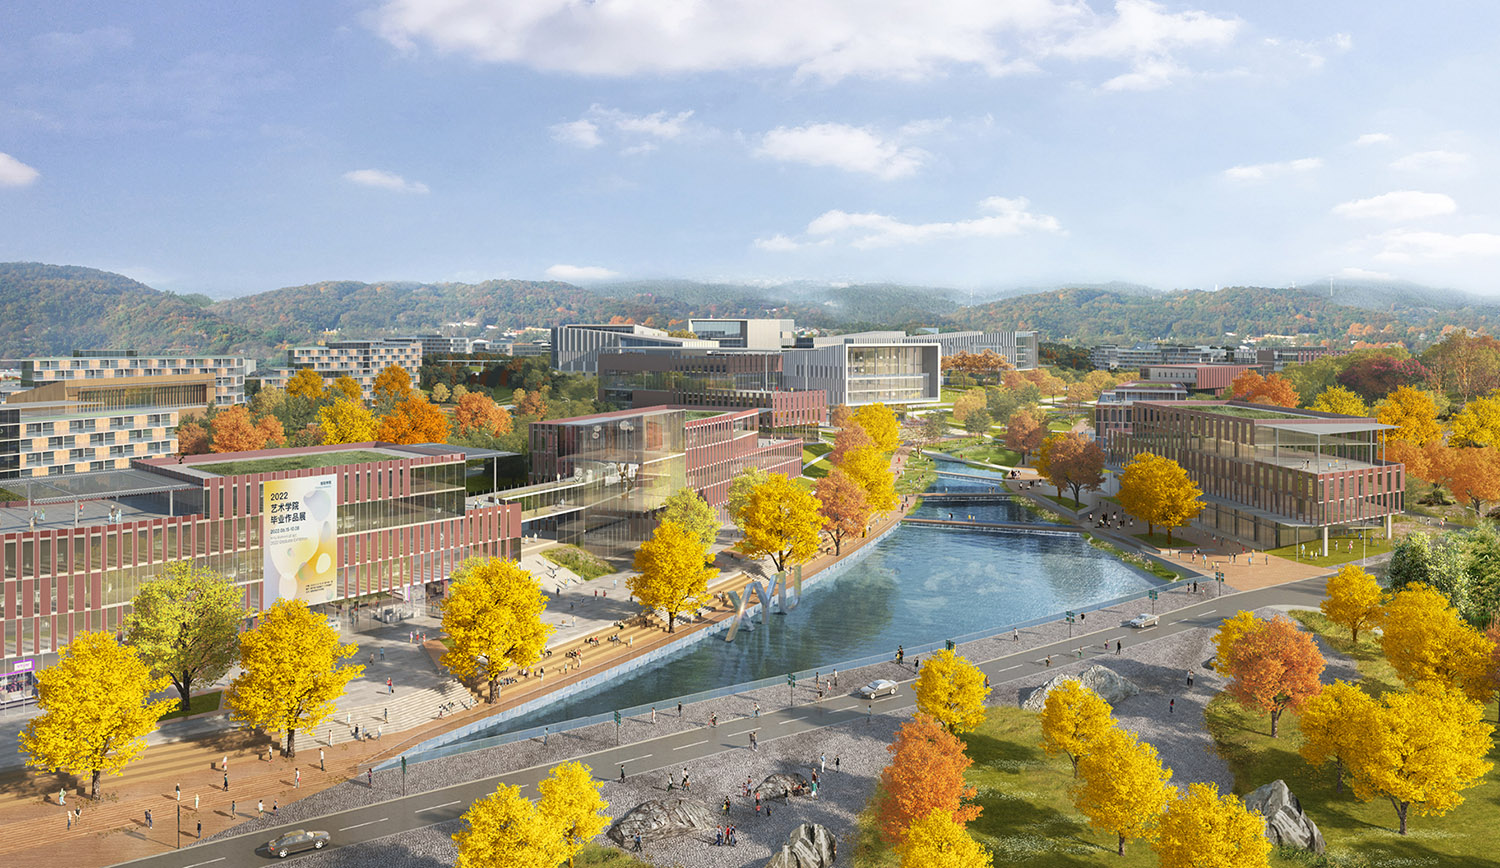 The academic valley connects all academic programs and celebrates an uninterrupted vista between the main entrance and preserved woodland. SASAKI